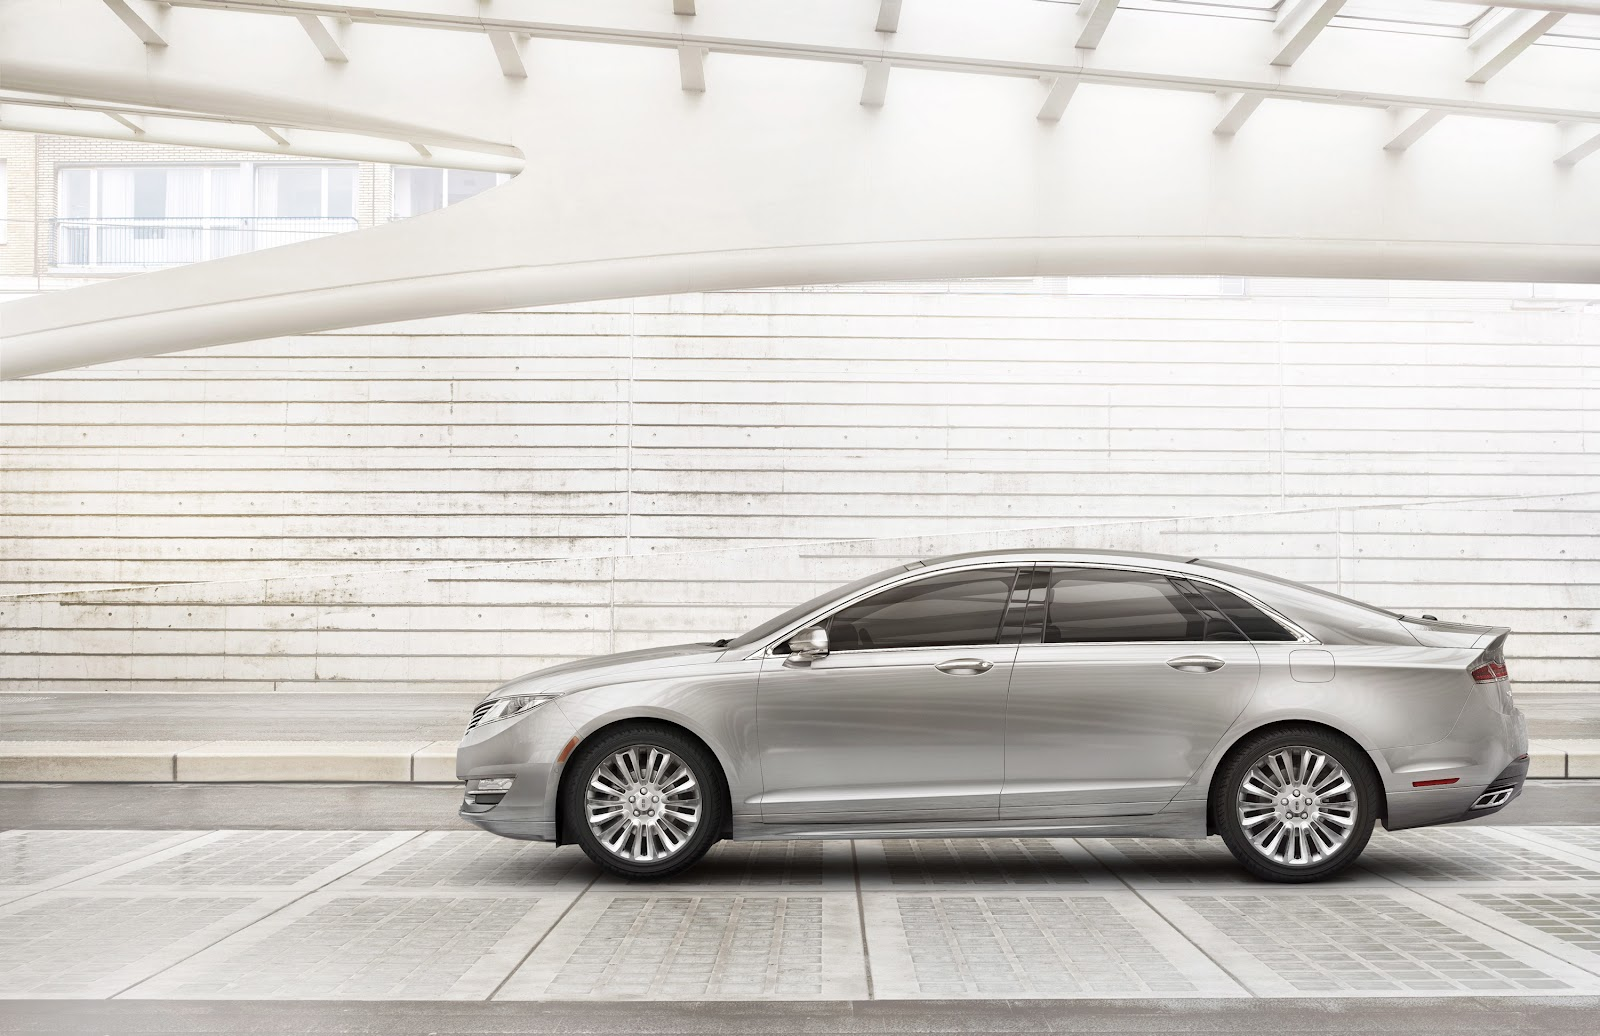 2016 - [Lincoln] MKZ - Page 2 2013+lincoln+mkz+11